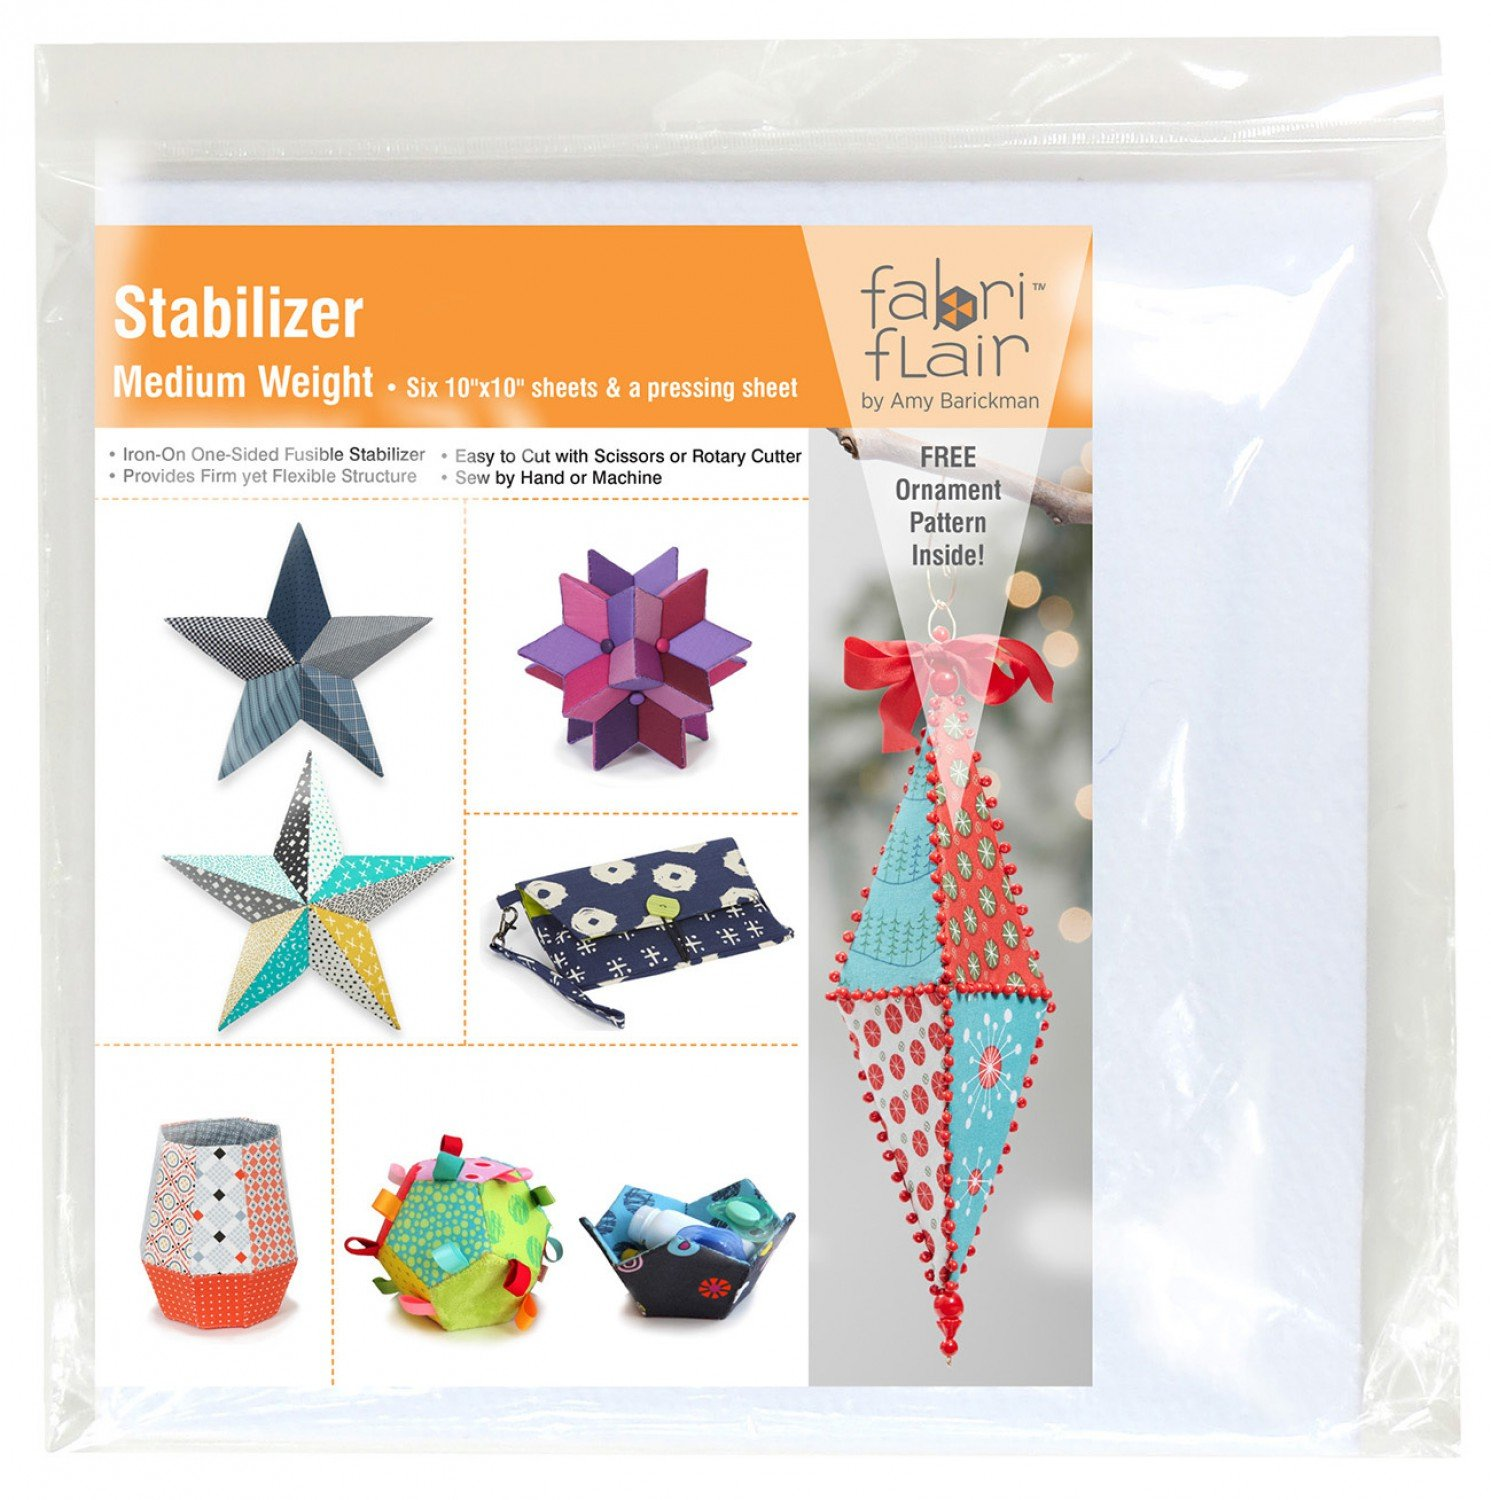 Fabriflair Medium Weight Stabilizer